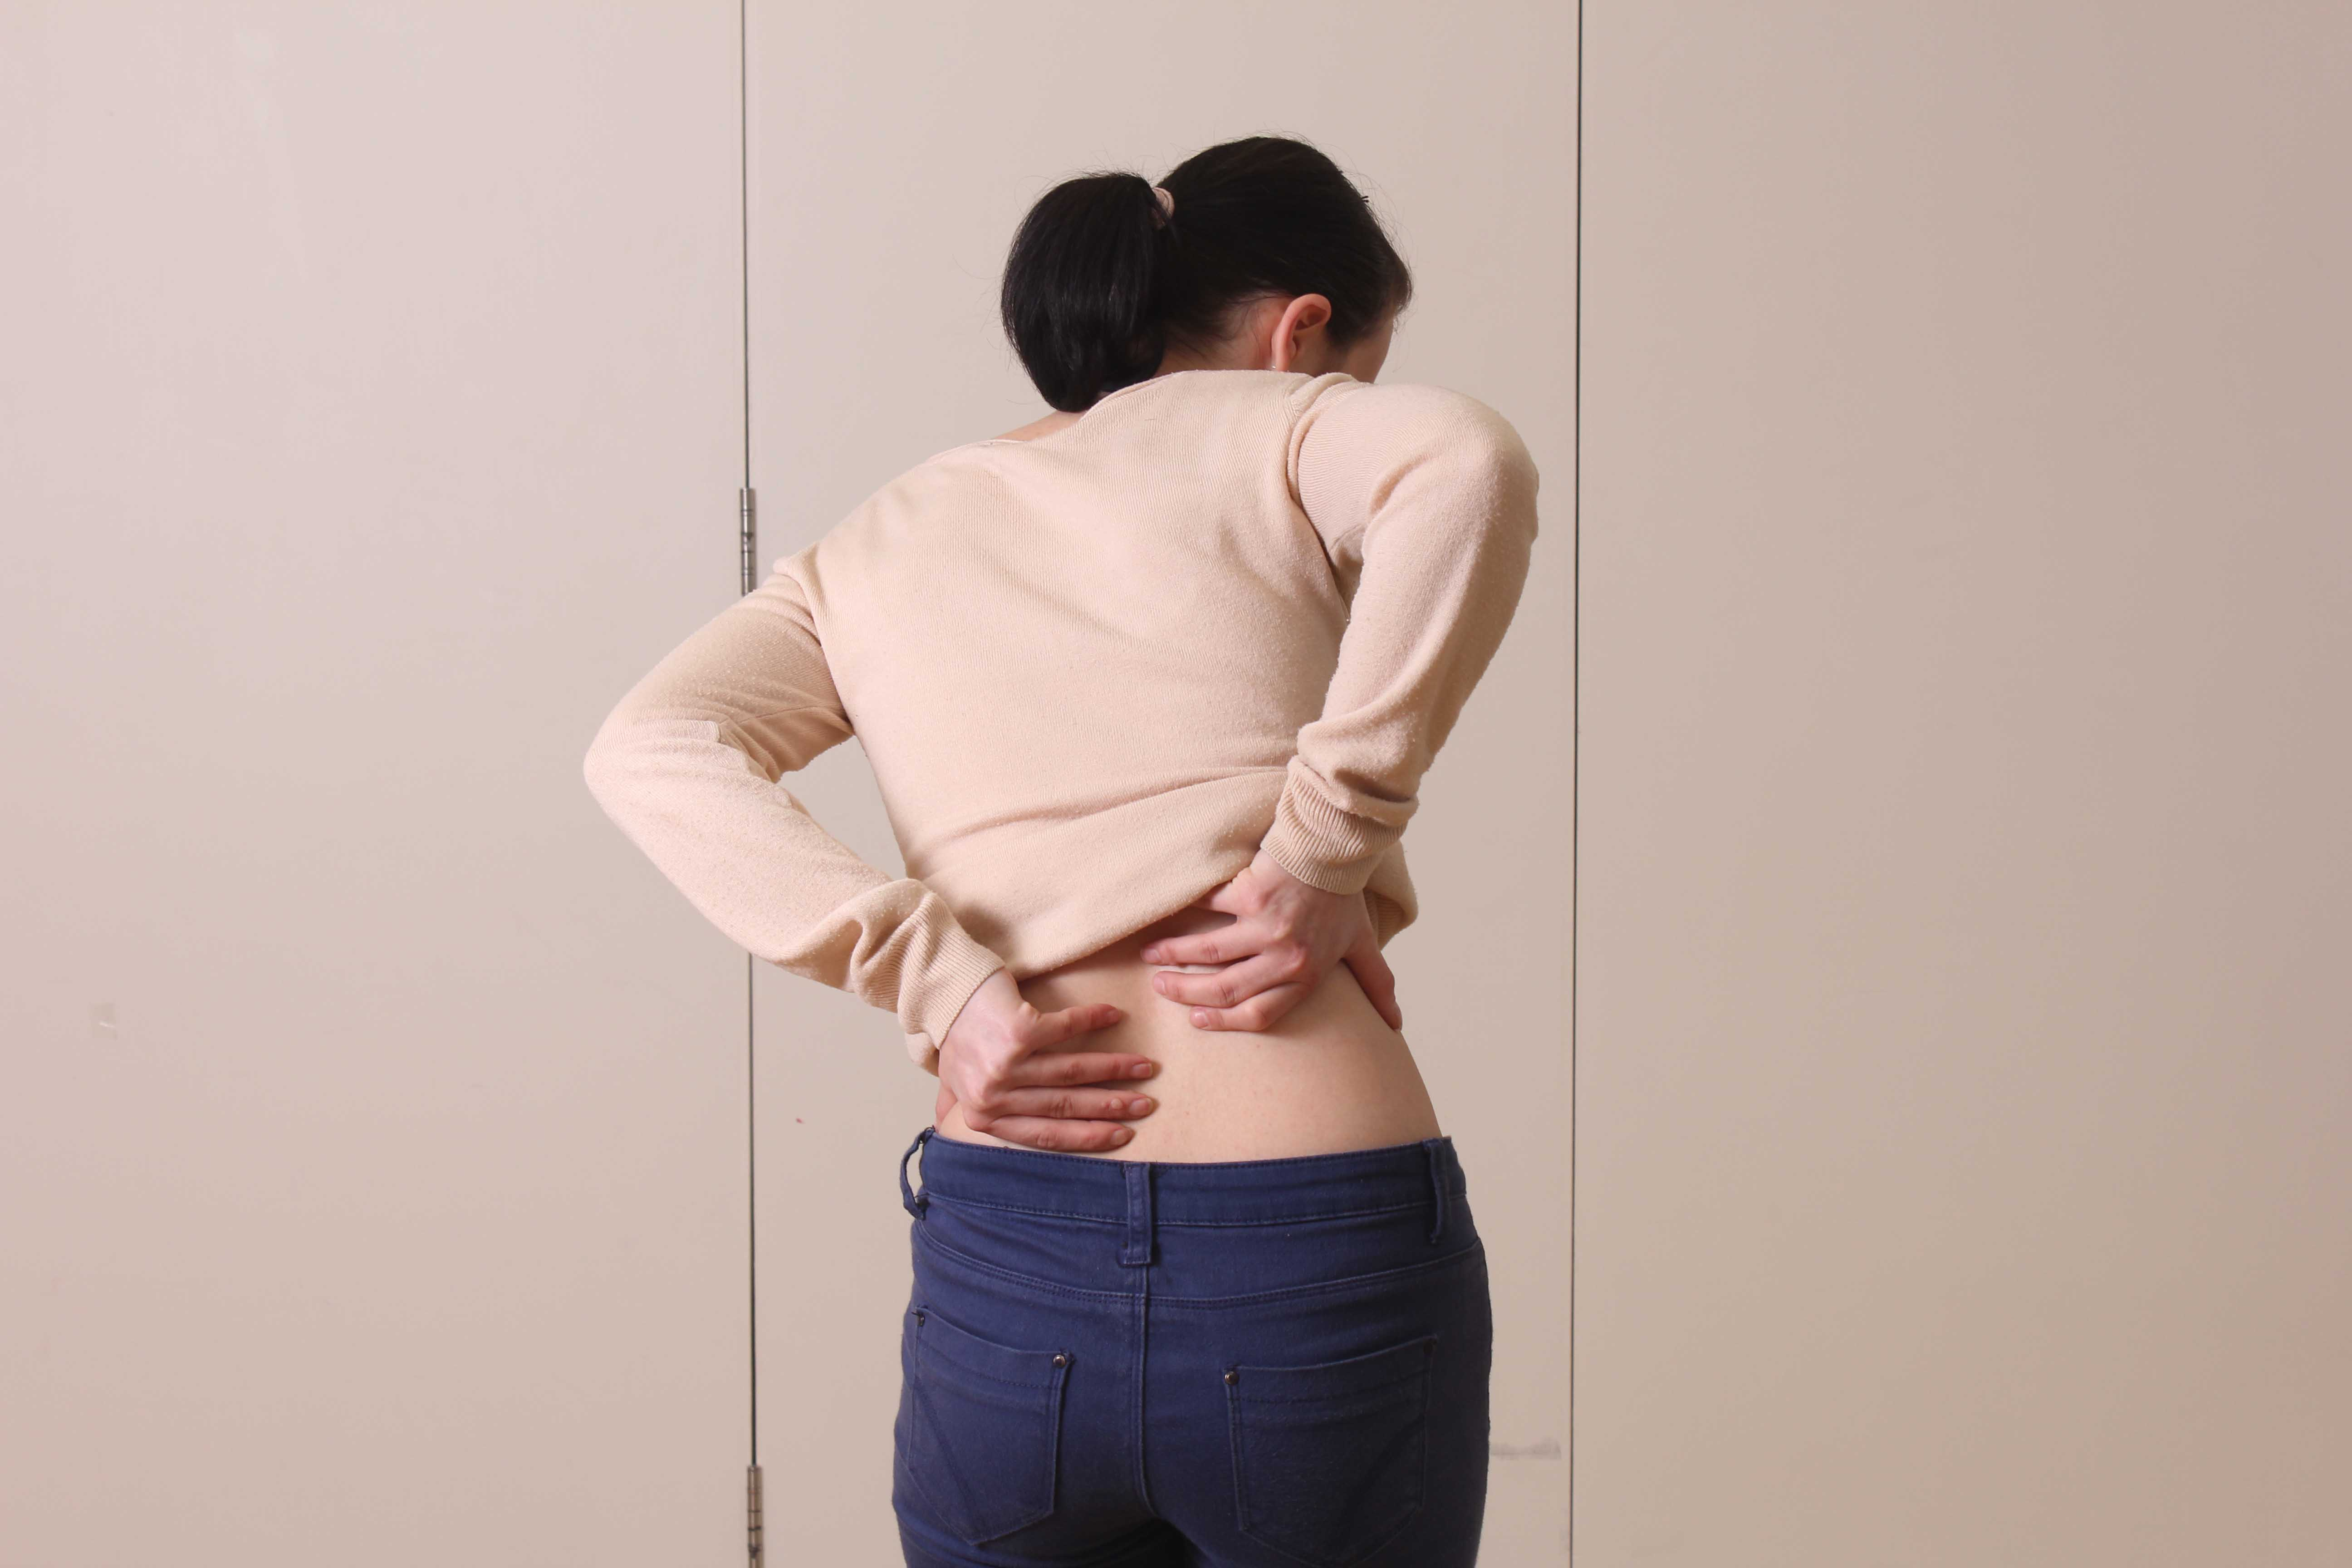 Pain associated with the muscles and connective tissues of the lower back